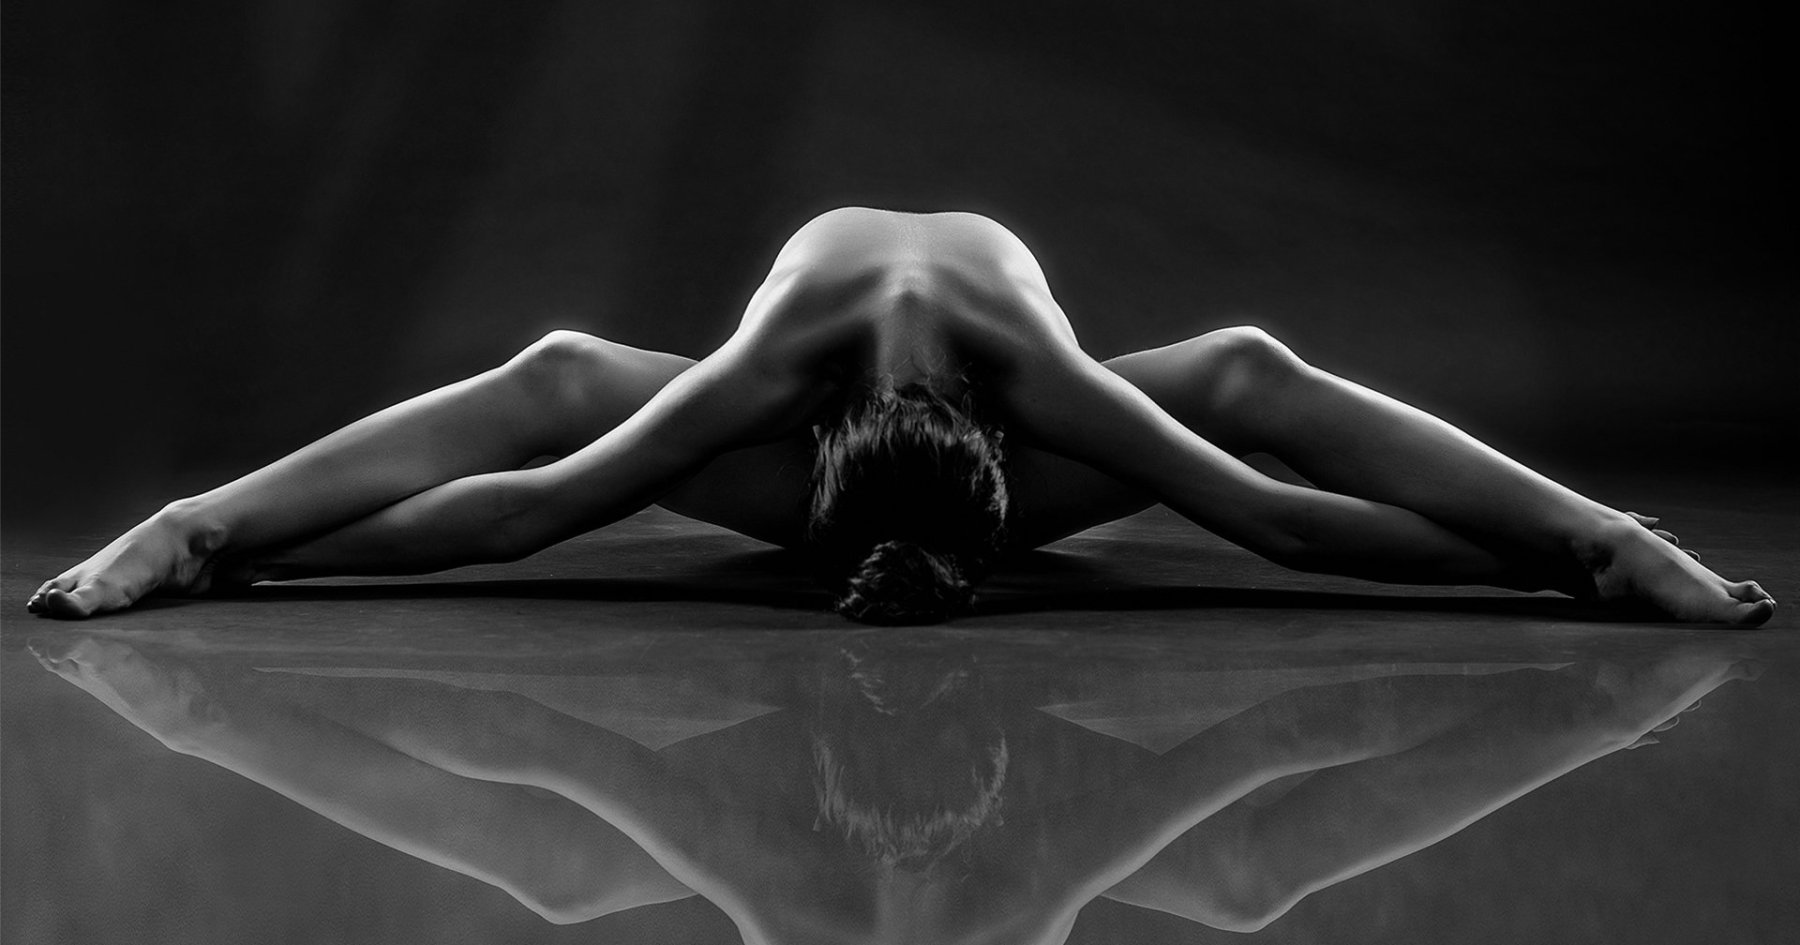 Are You Ready for 'Erotic Yoga'?